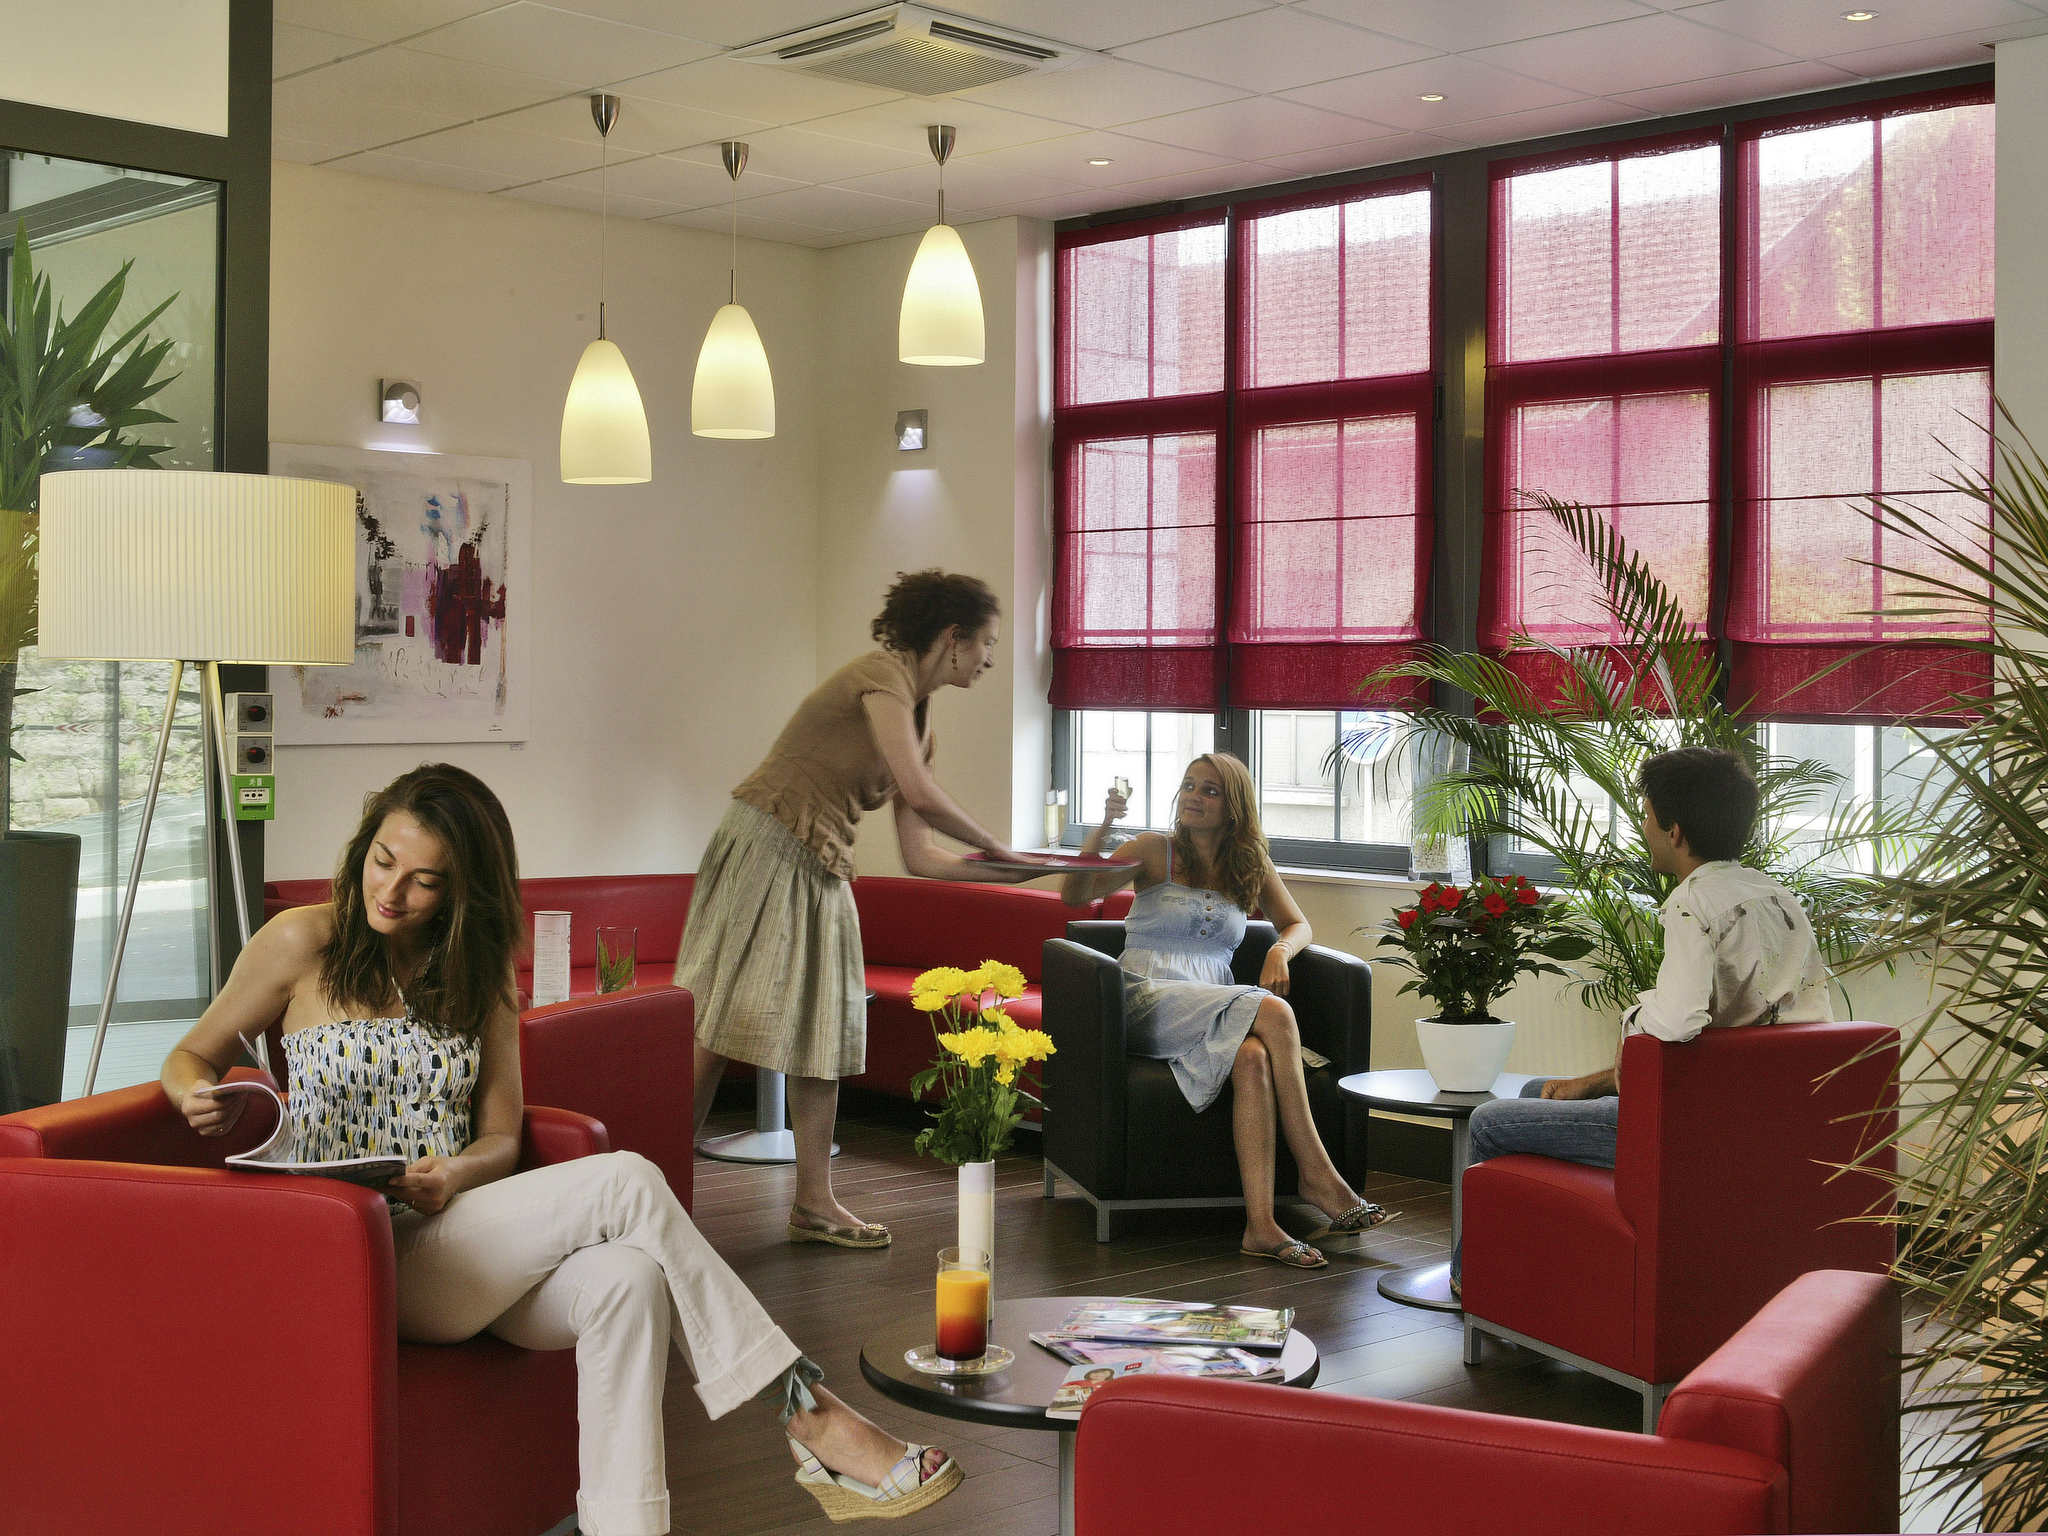 Free hotel ibis sarlat with location appart hotel sarlat for Appart hotel ibis